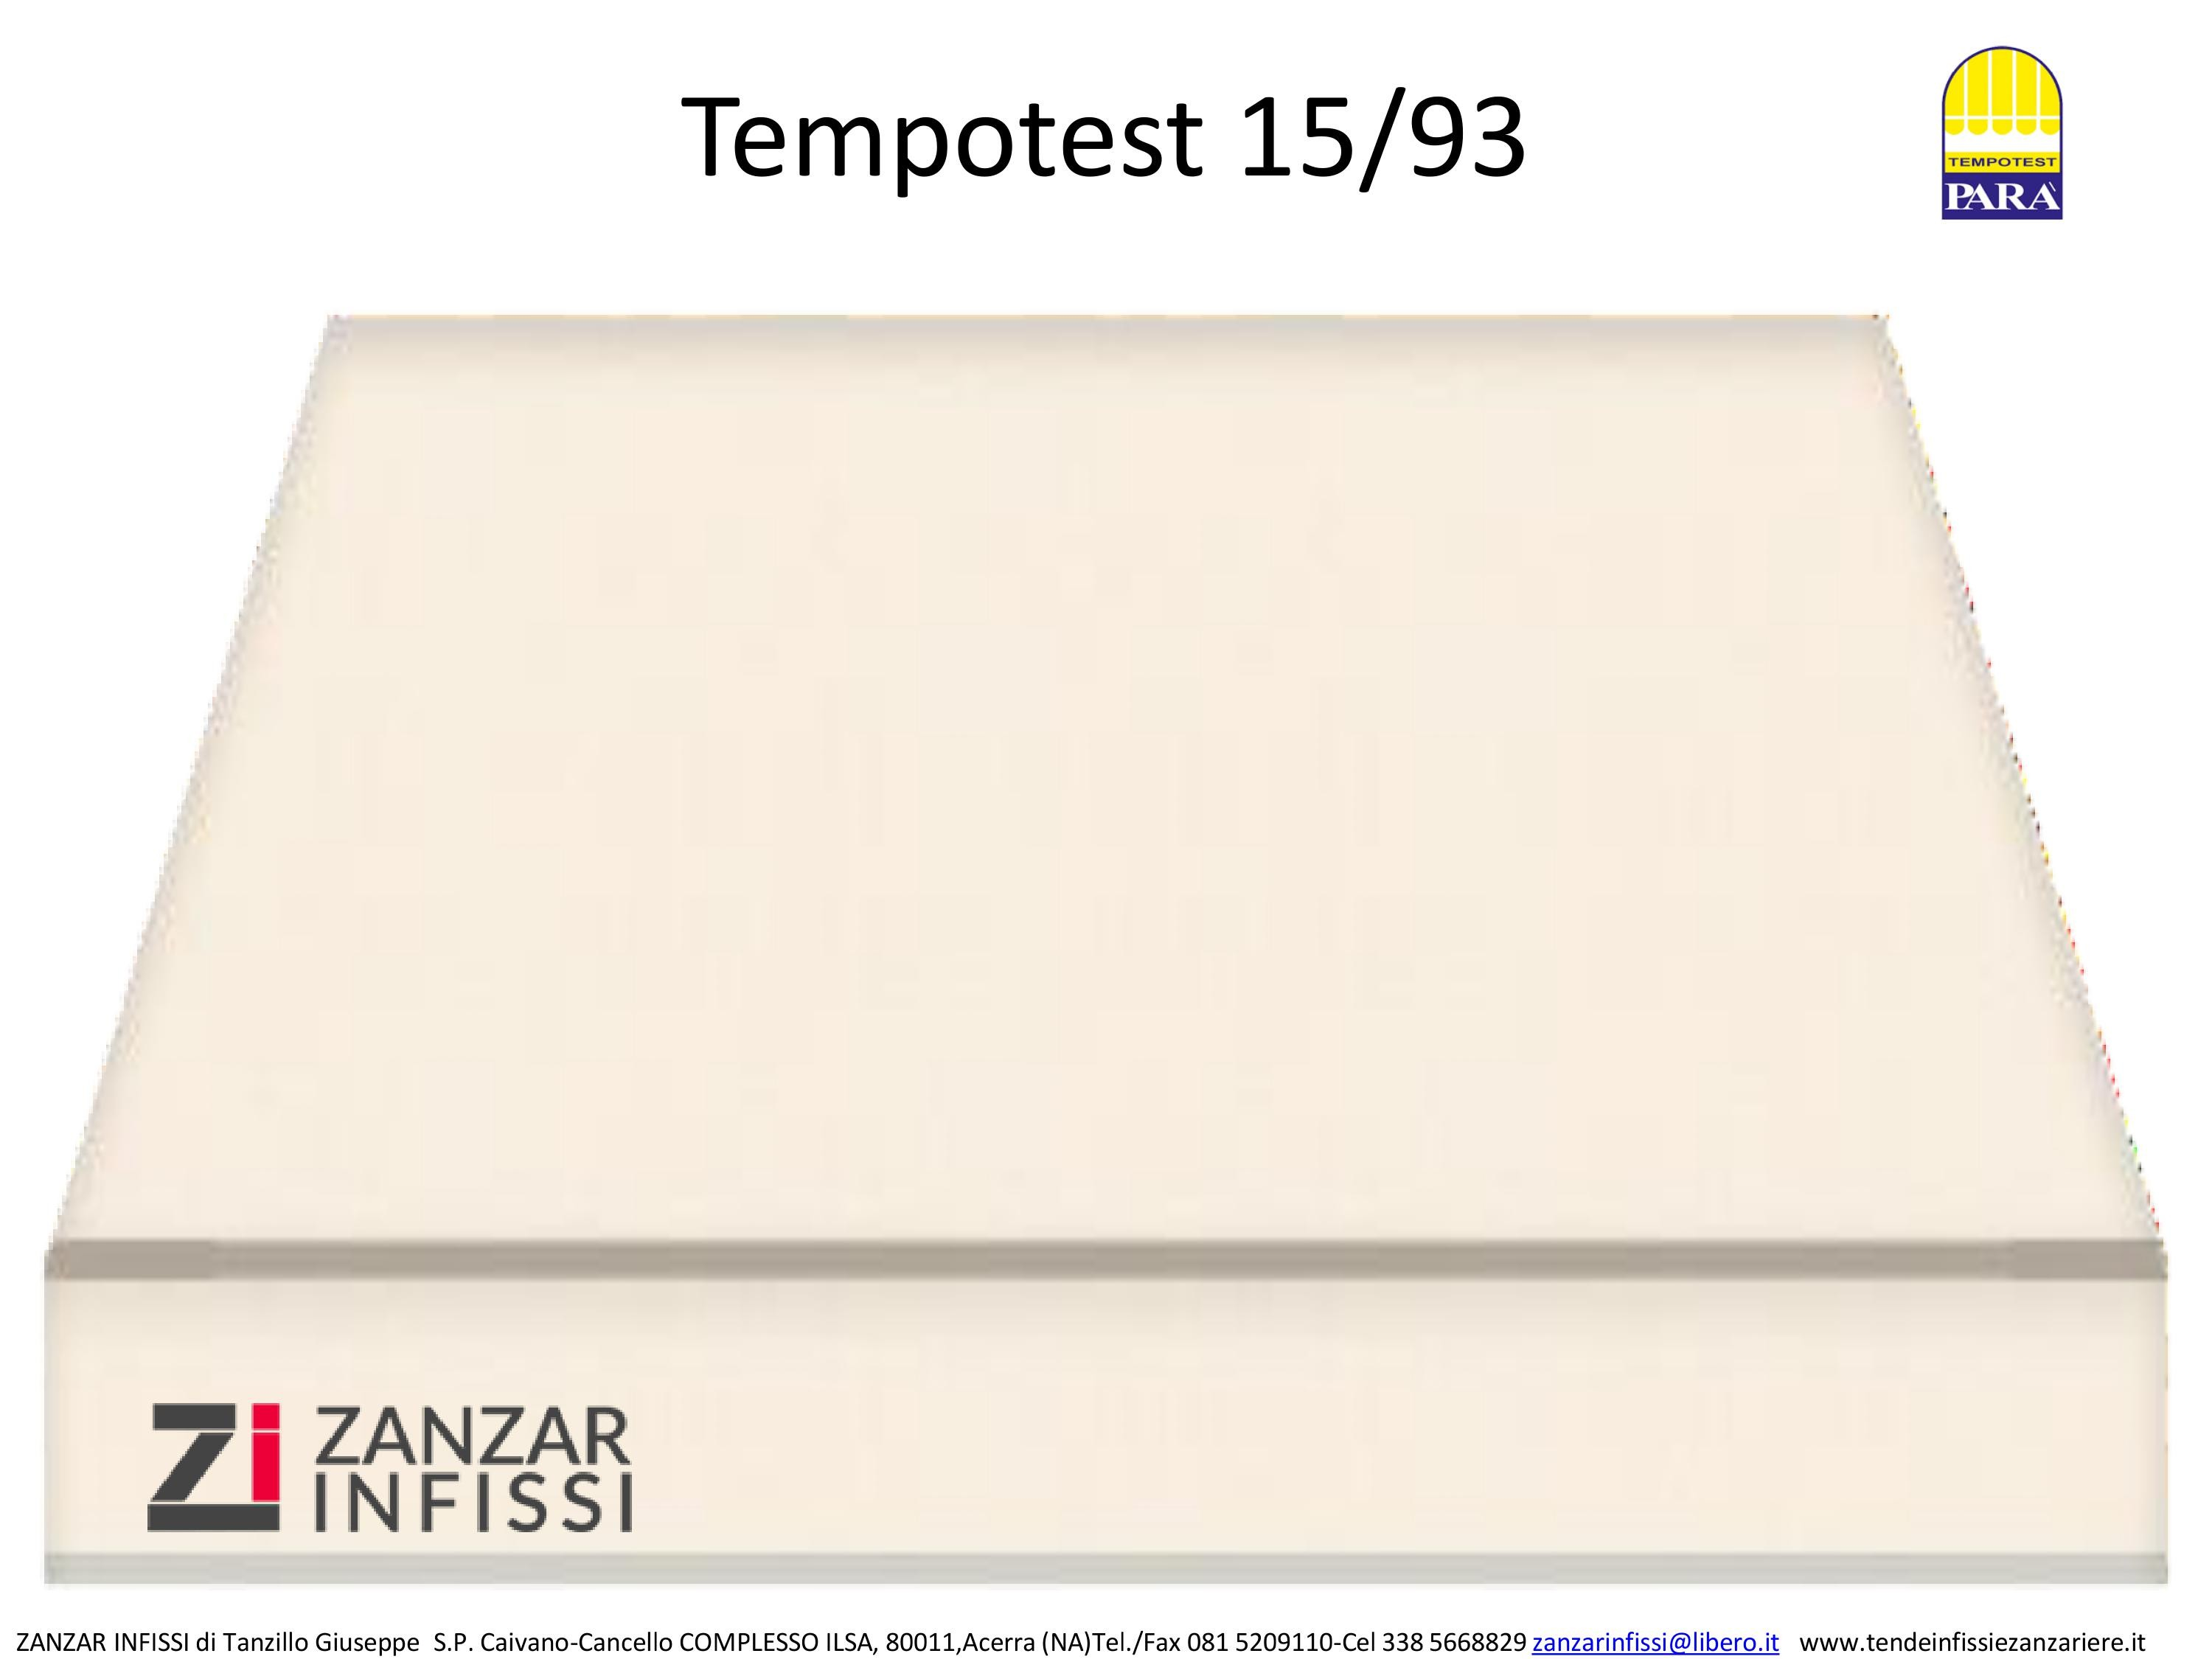 Tempotest 15/93